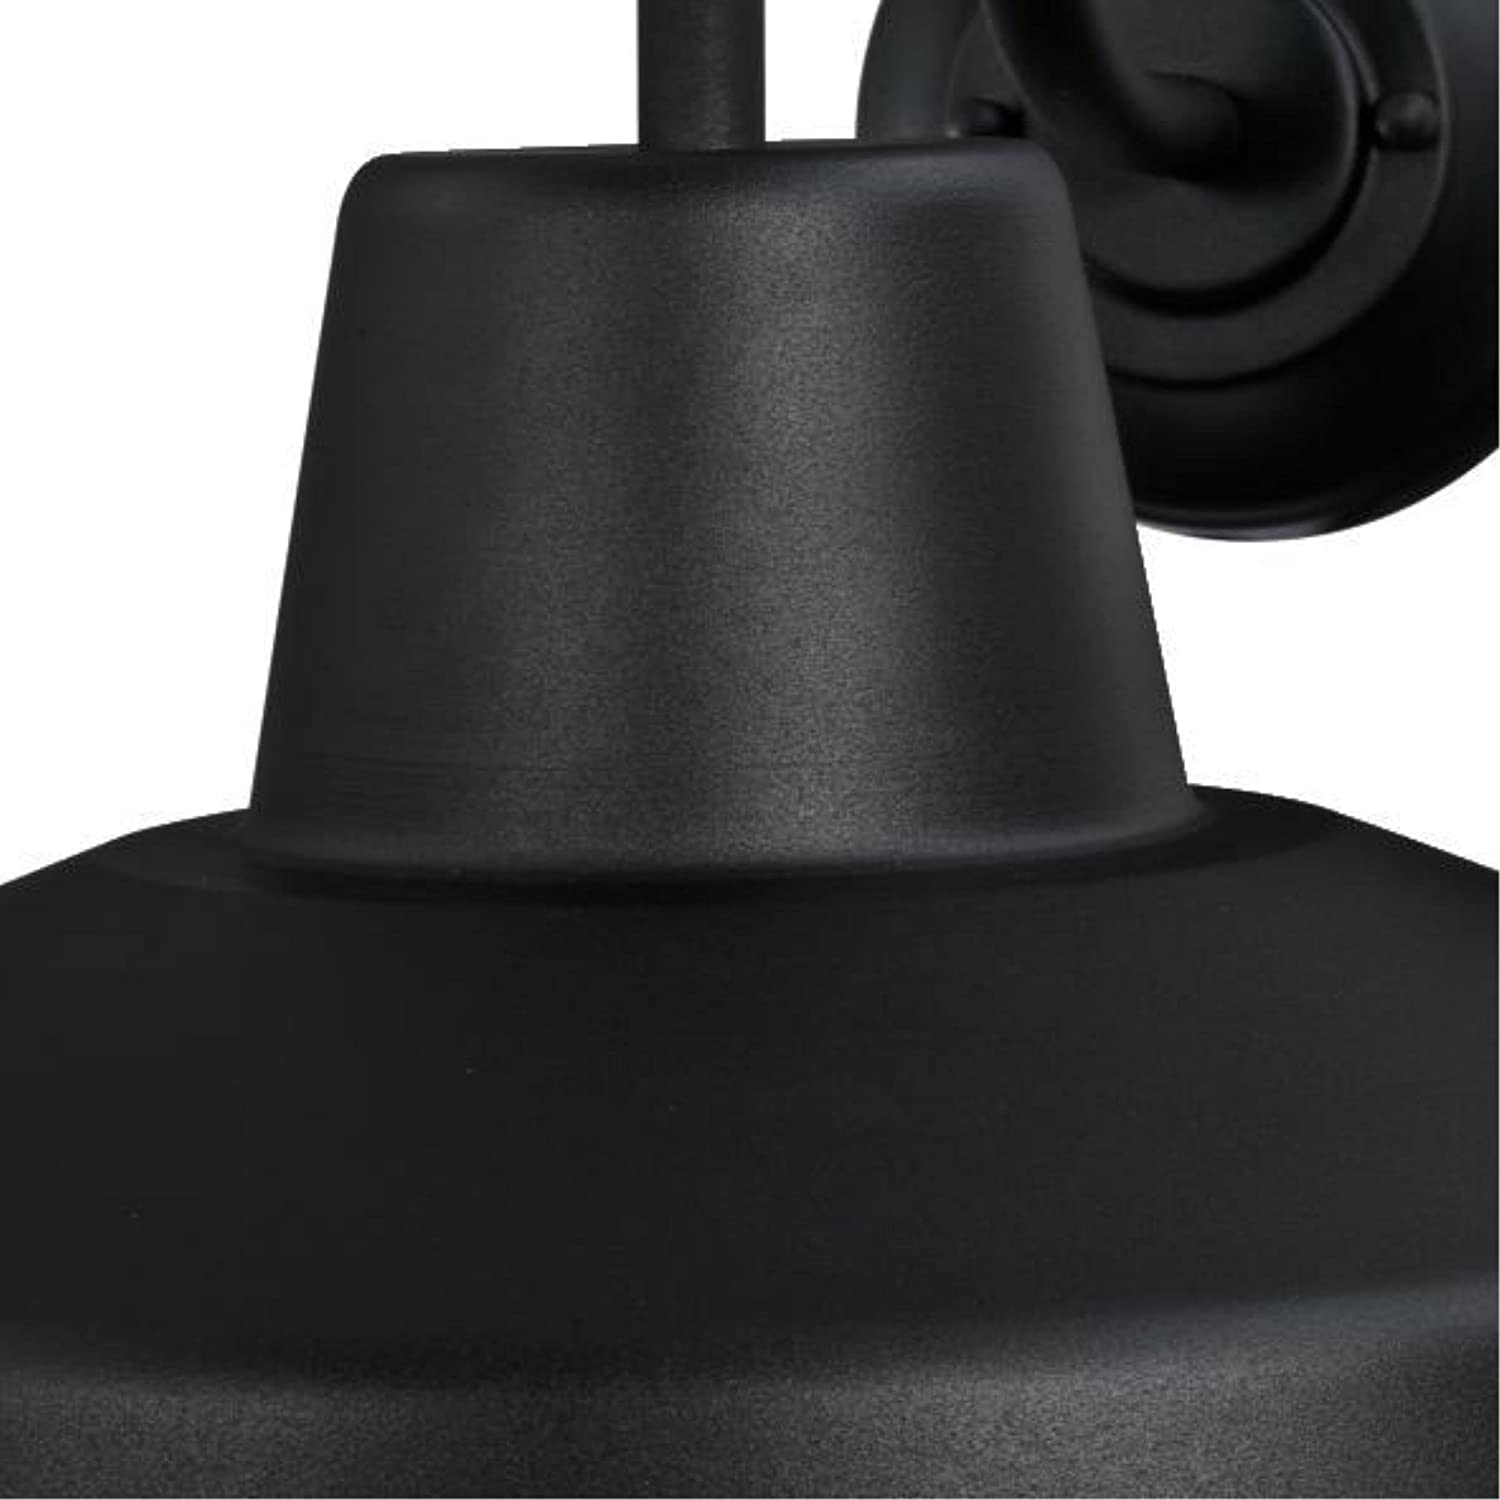 Textured Black Finish with Chrome Cage Indoor Westinghouse Lighting 6204700 Academy One-Light LED Outdoor Wall Fixture